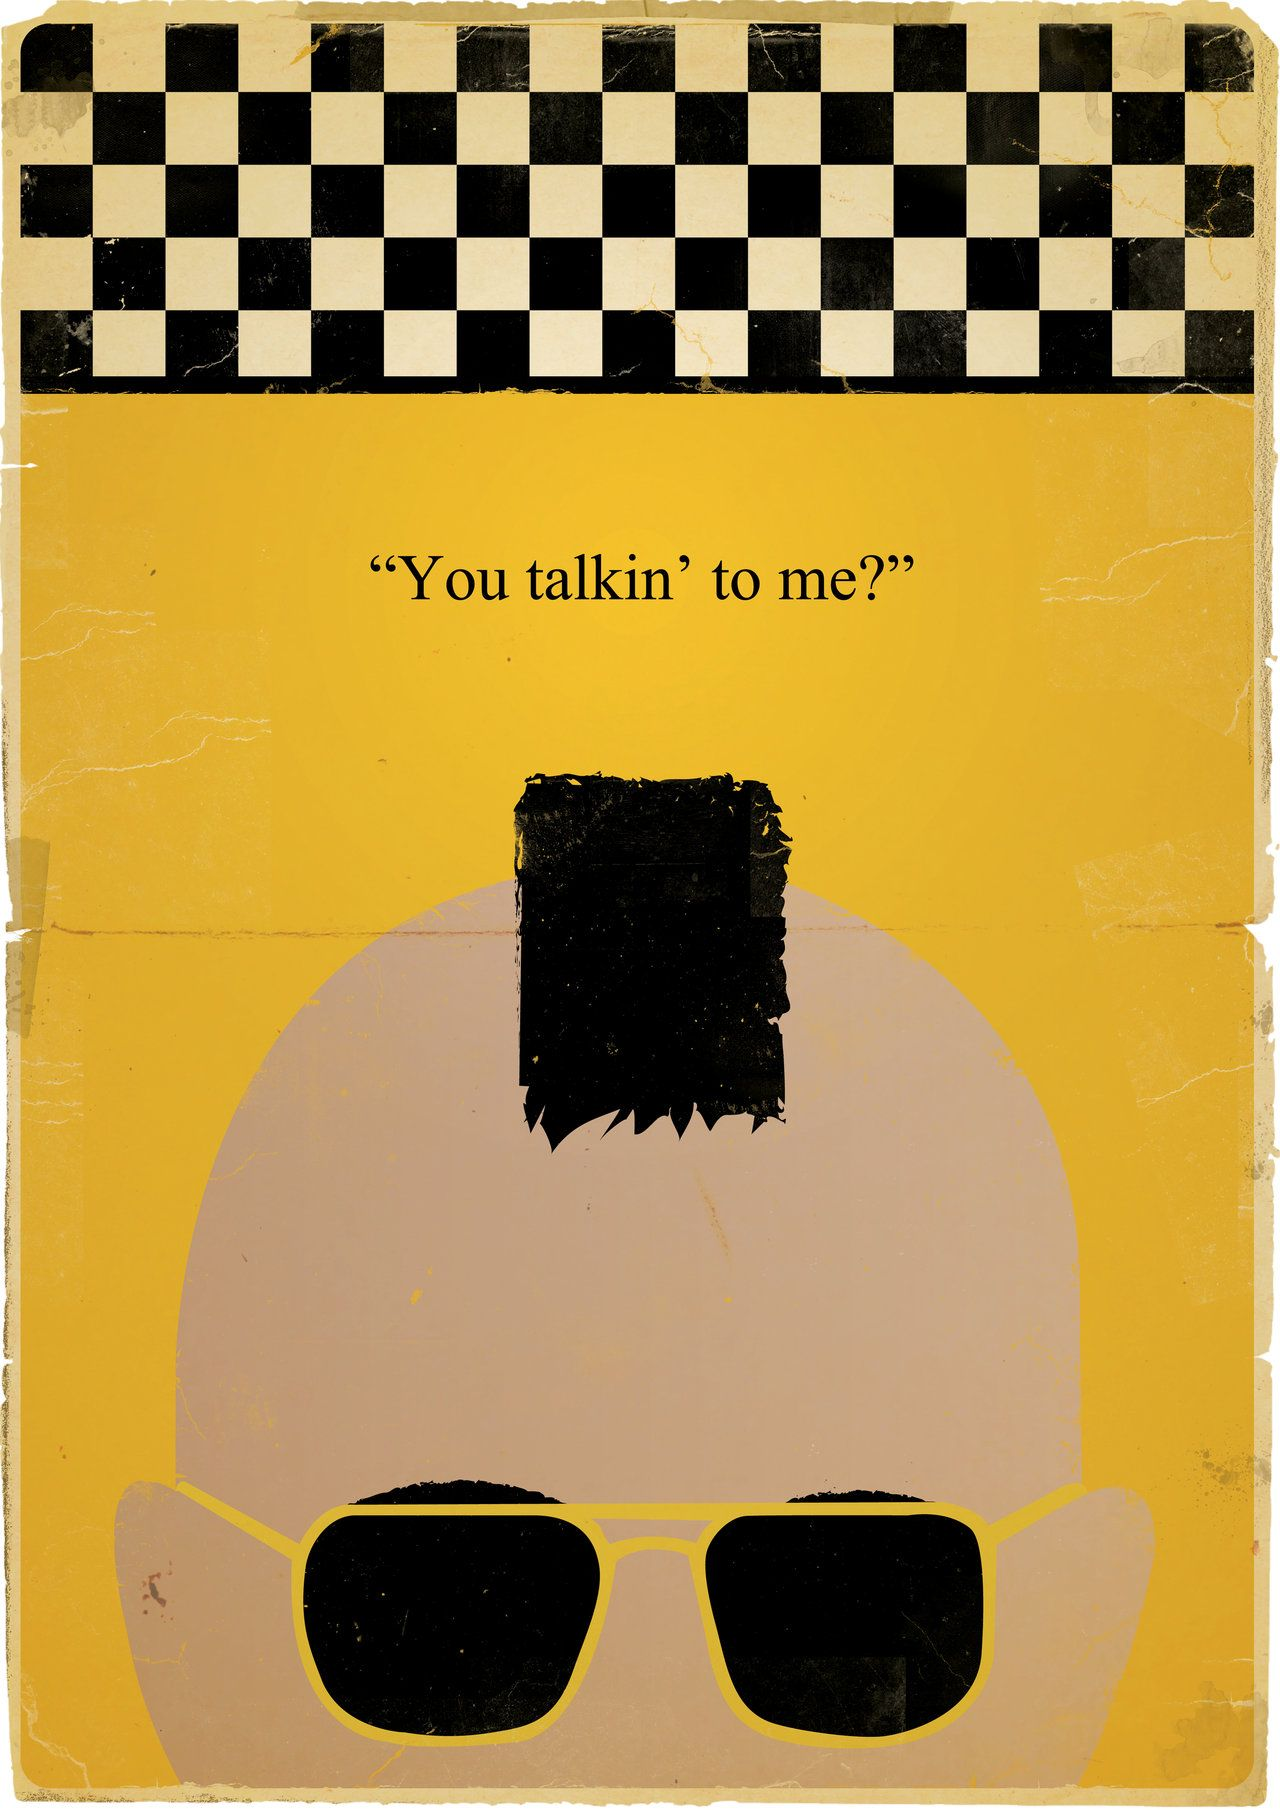 Taxi Driver Minimalist Poster By Jackdaw78 On Deviantart Movie Posters Movie Posters Minimalist Taxi Driver